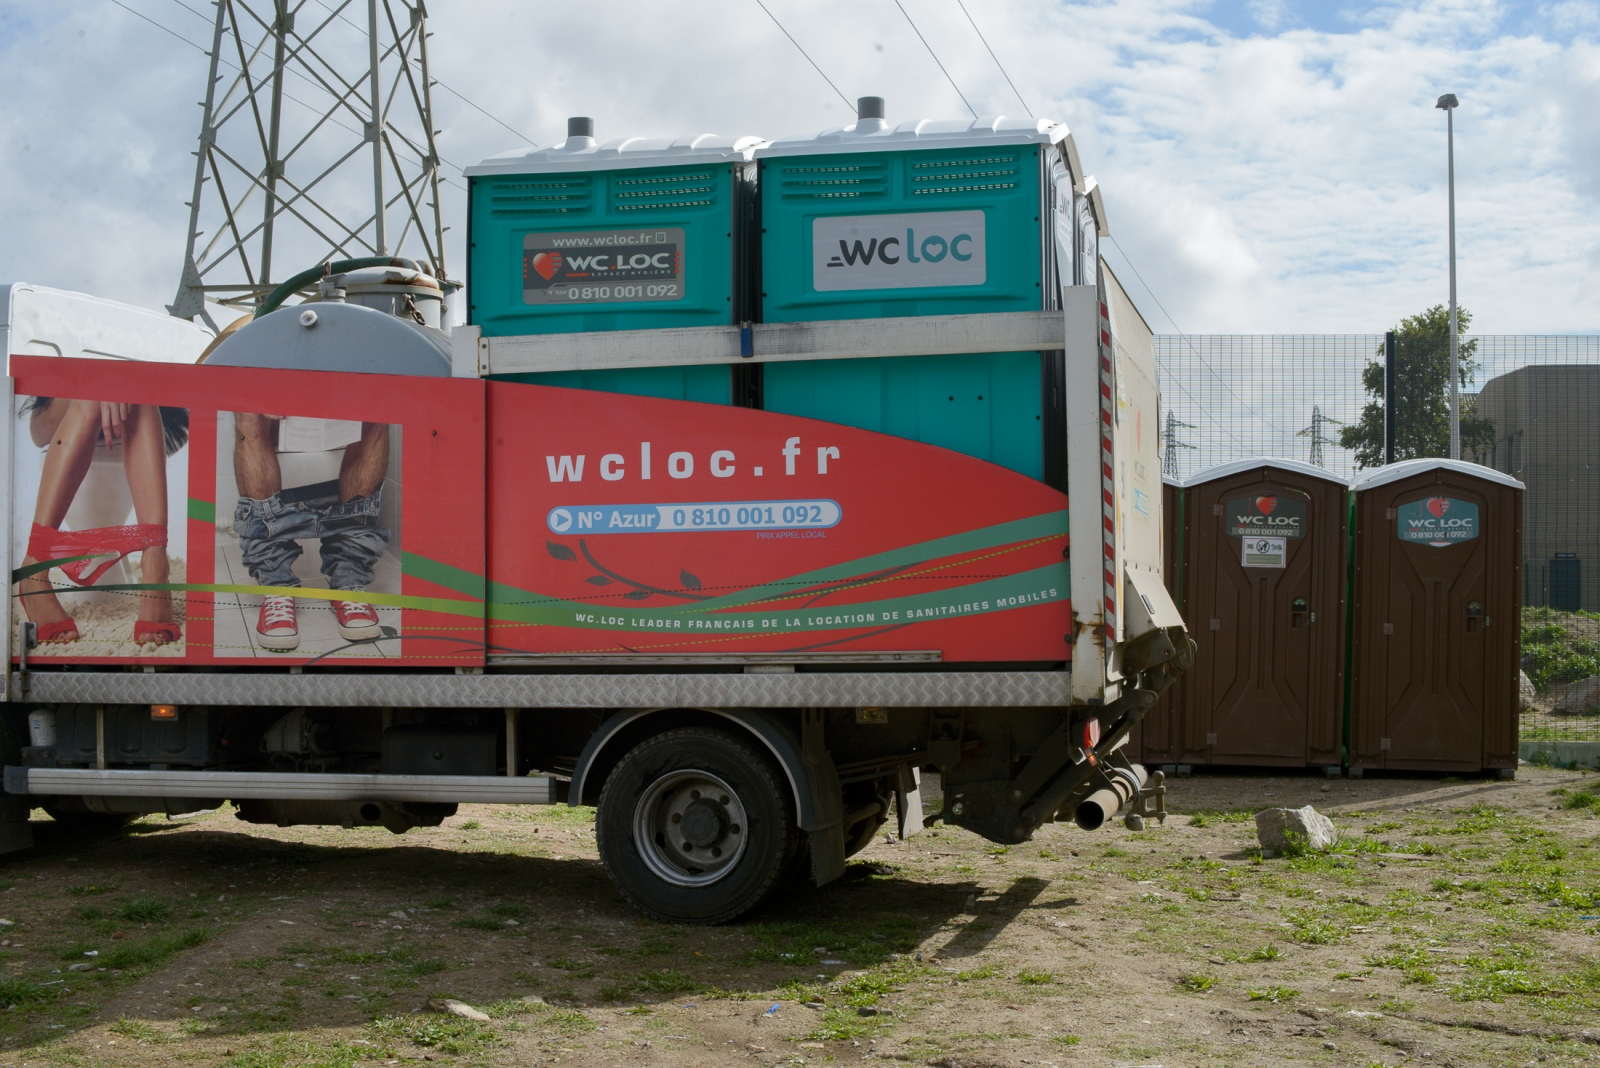 August 19, 2017 - Calais, France. Following a court order of June 26, 2017 obliging the mayor of Calais to provide access to water and other services to exiled people, ten mobile toilets and 20 mobile water points were installed by the regional authorities on August 18, 2017 in one of the larger distribution points. There are a total of permanent 20 mobile toilets for around 1000 people, provided in proximity of two areas where exiled people regroup.